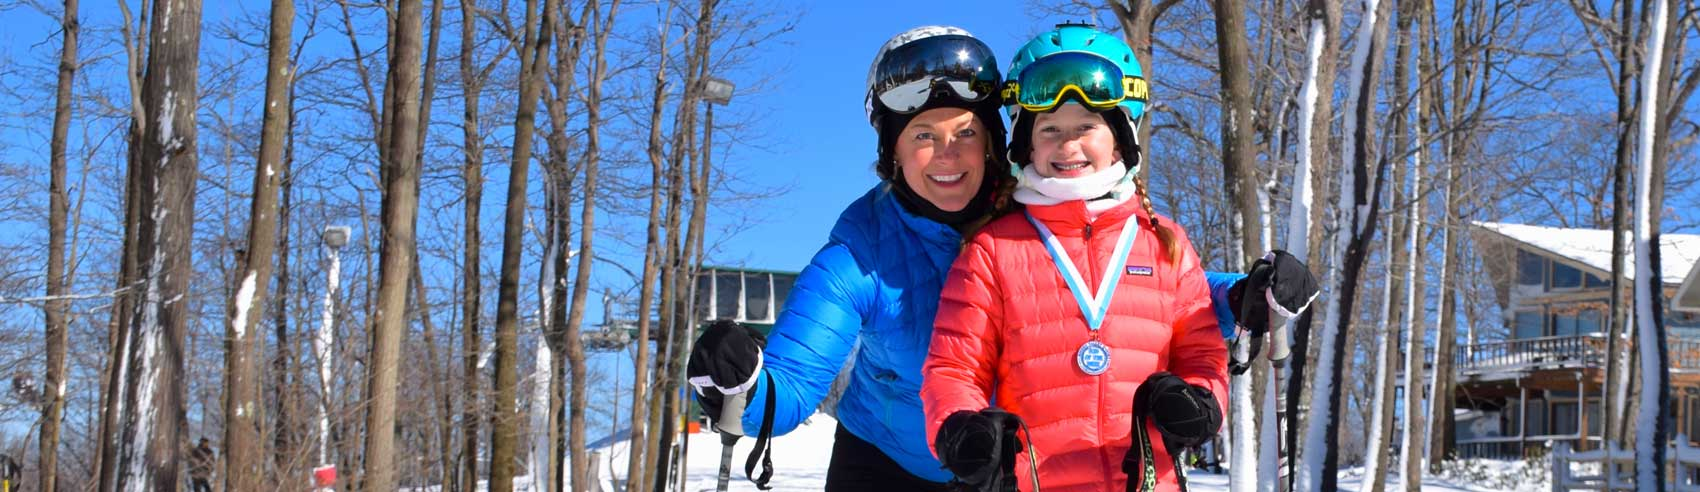 mom-and-daughter-on-the-slopes